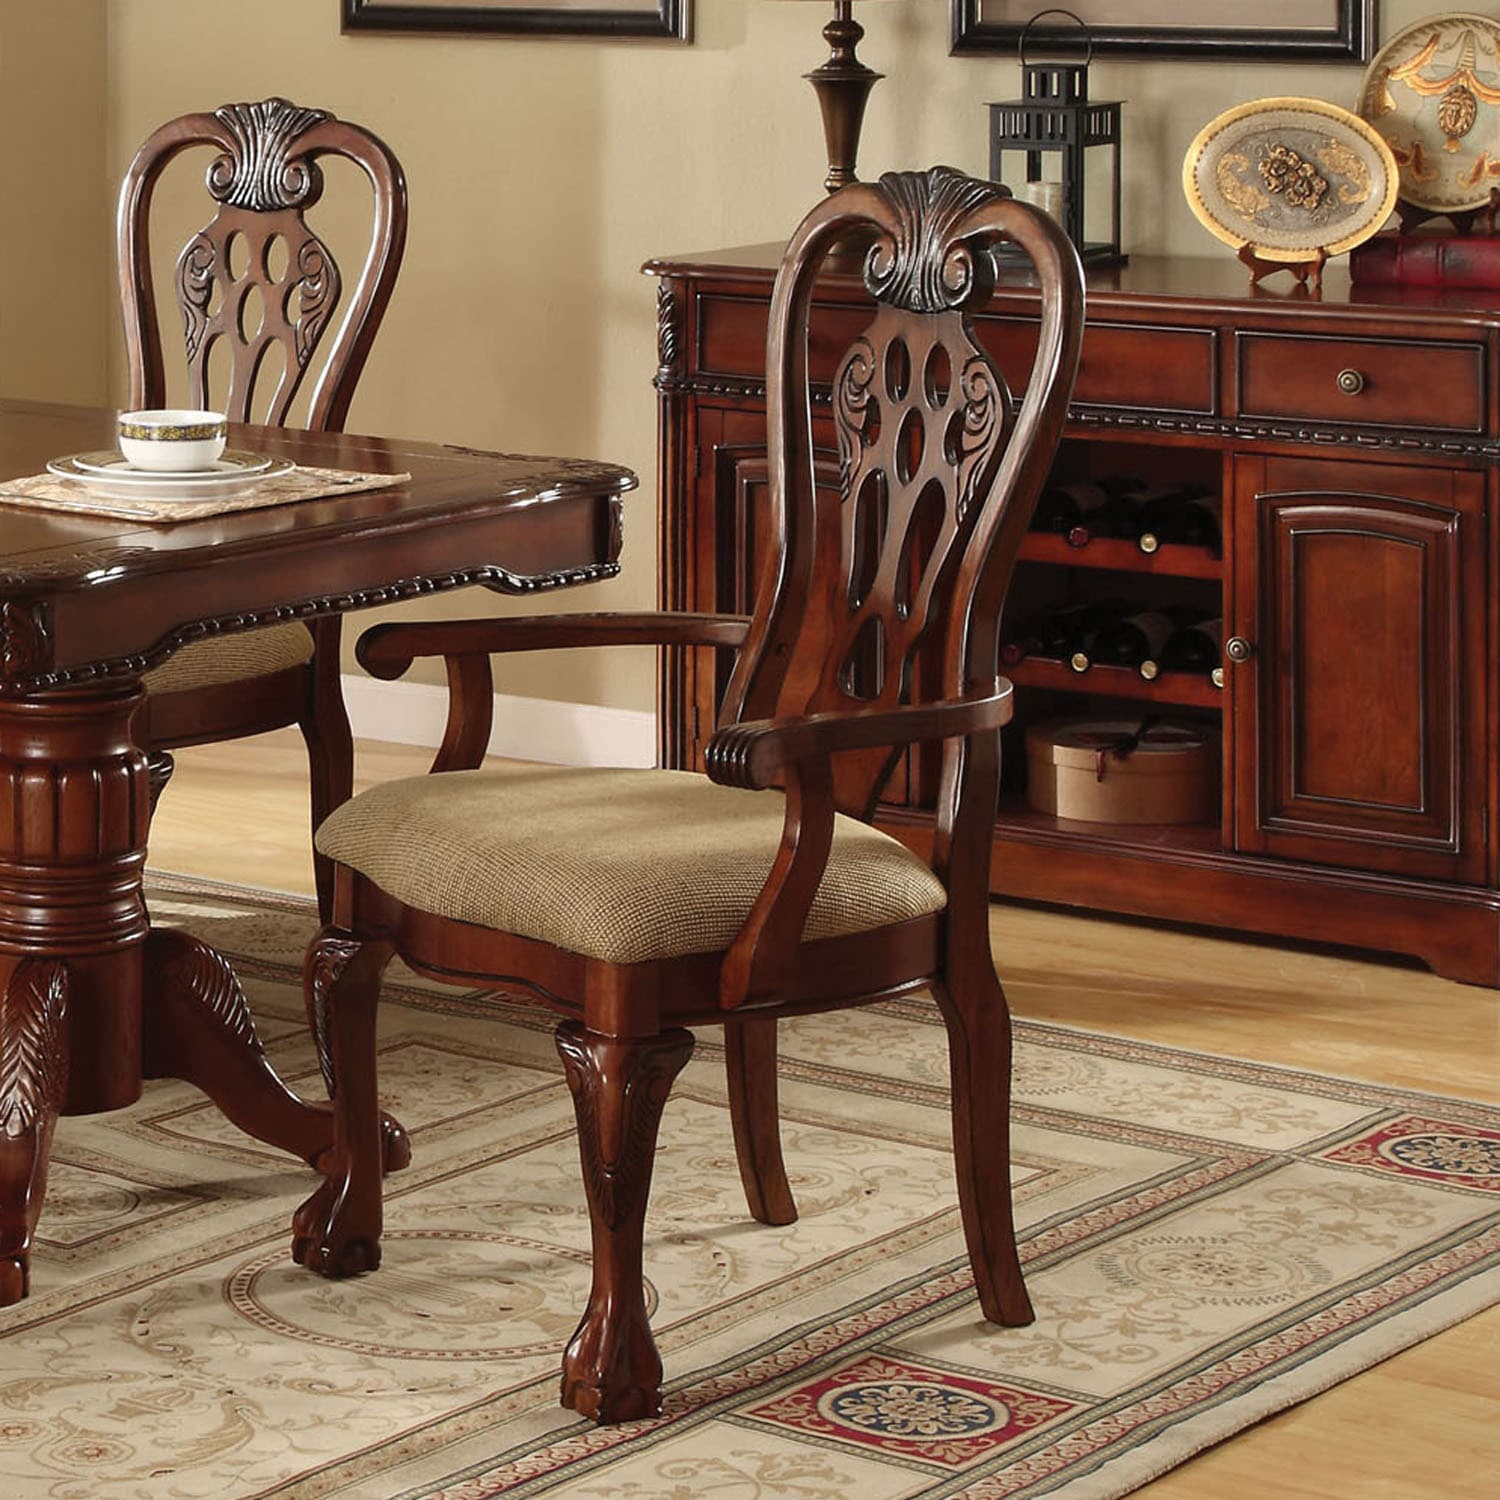 Furniture Of America Mallory Formal Cherry Red: Shop Furniture Of America Harper Cherry Arm Chair (Set Of